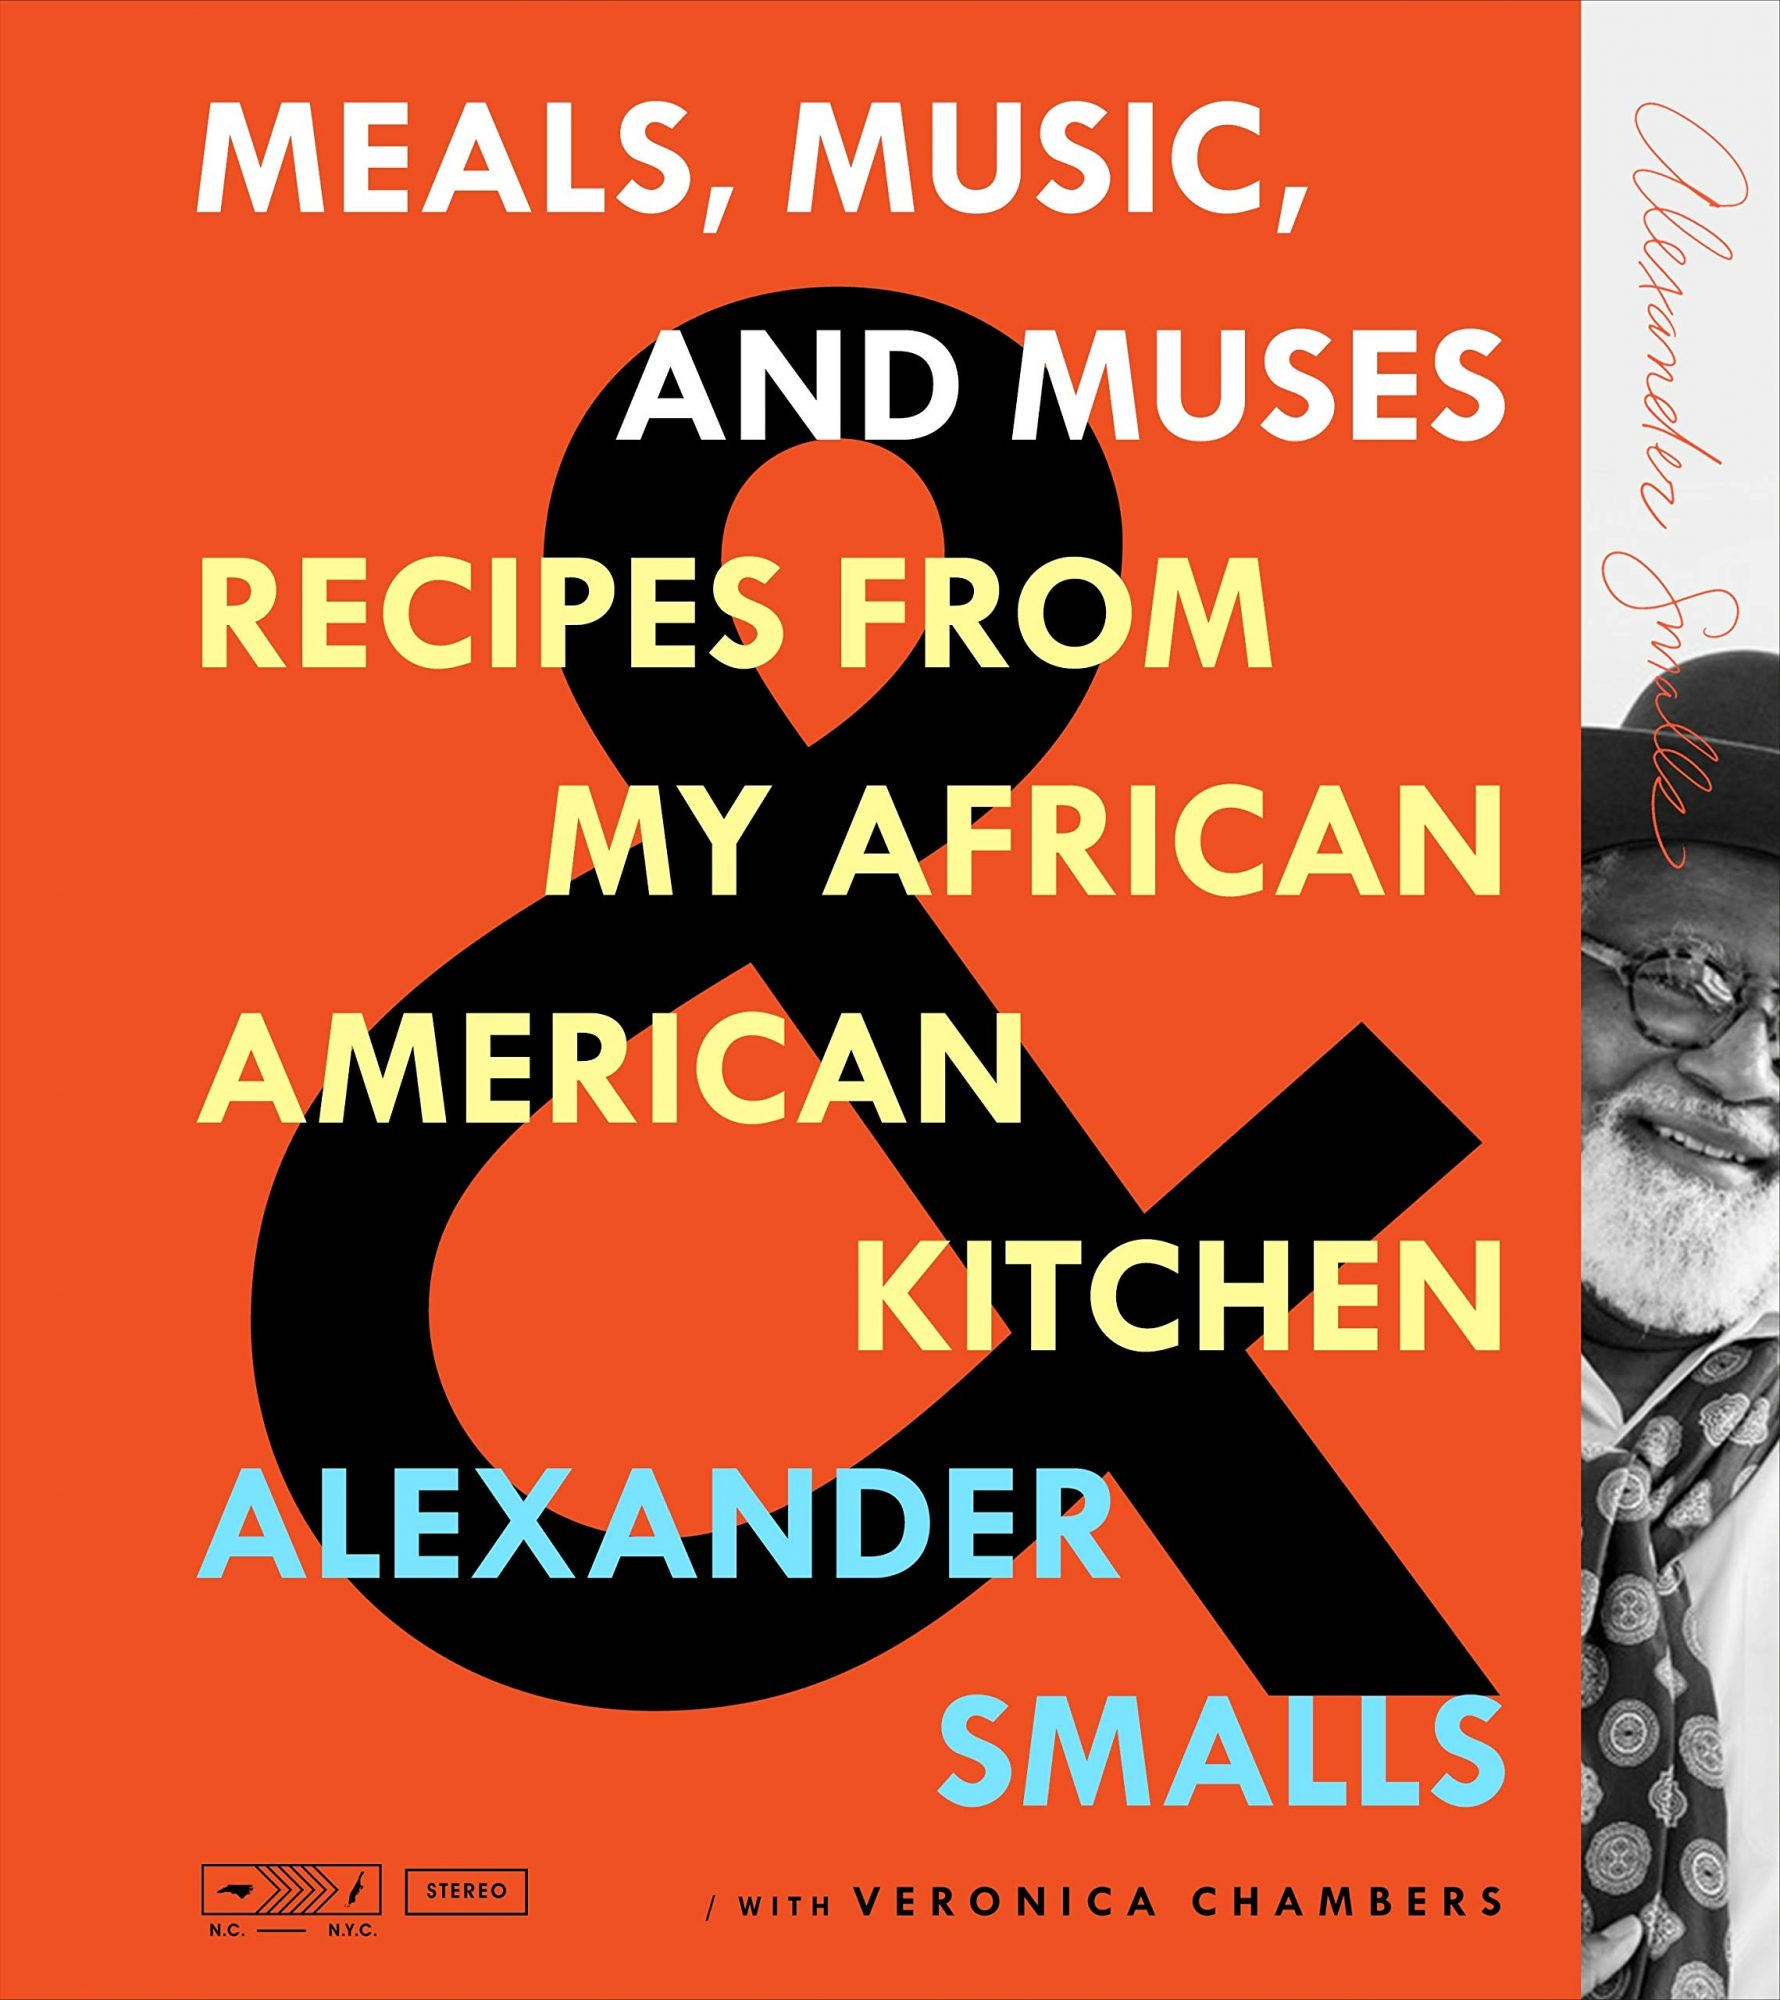 Meals, Music, and Muses cookbook